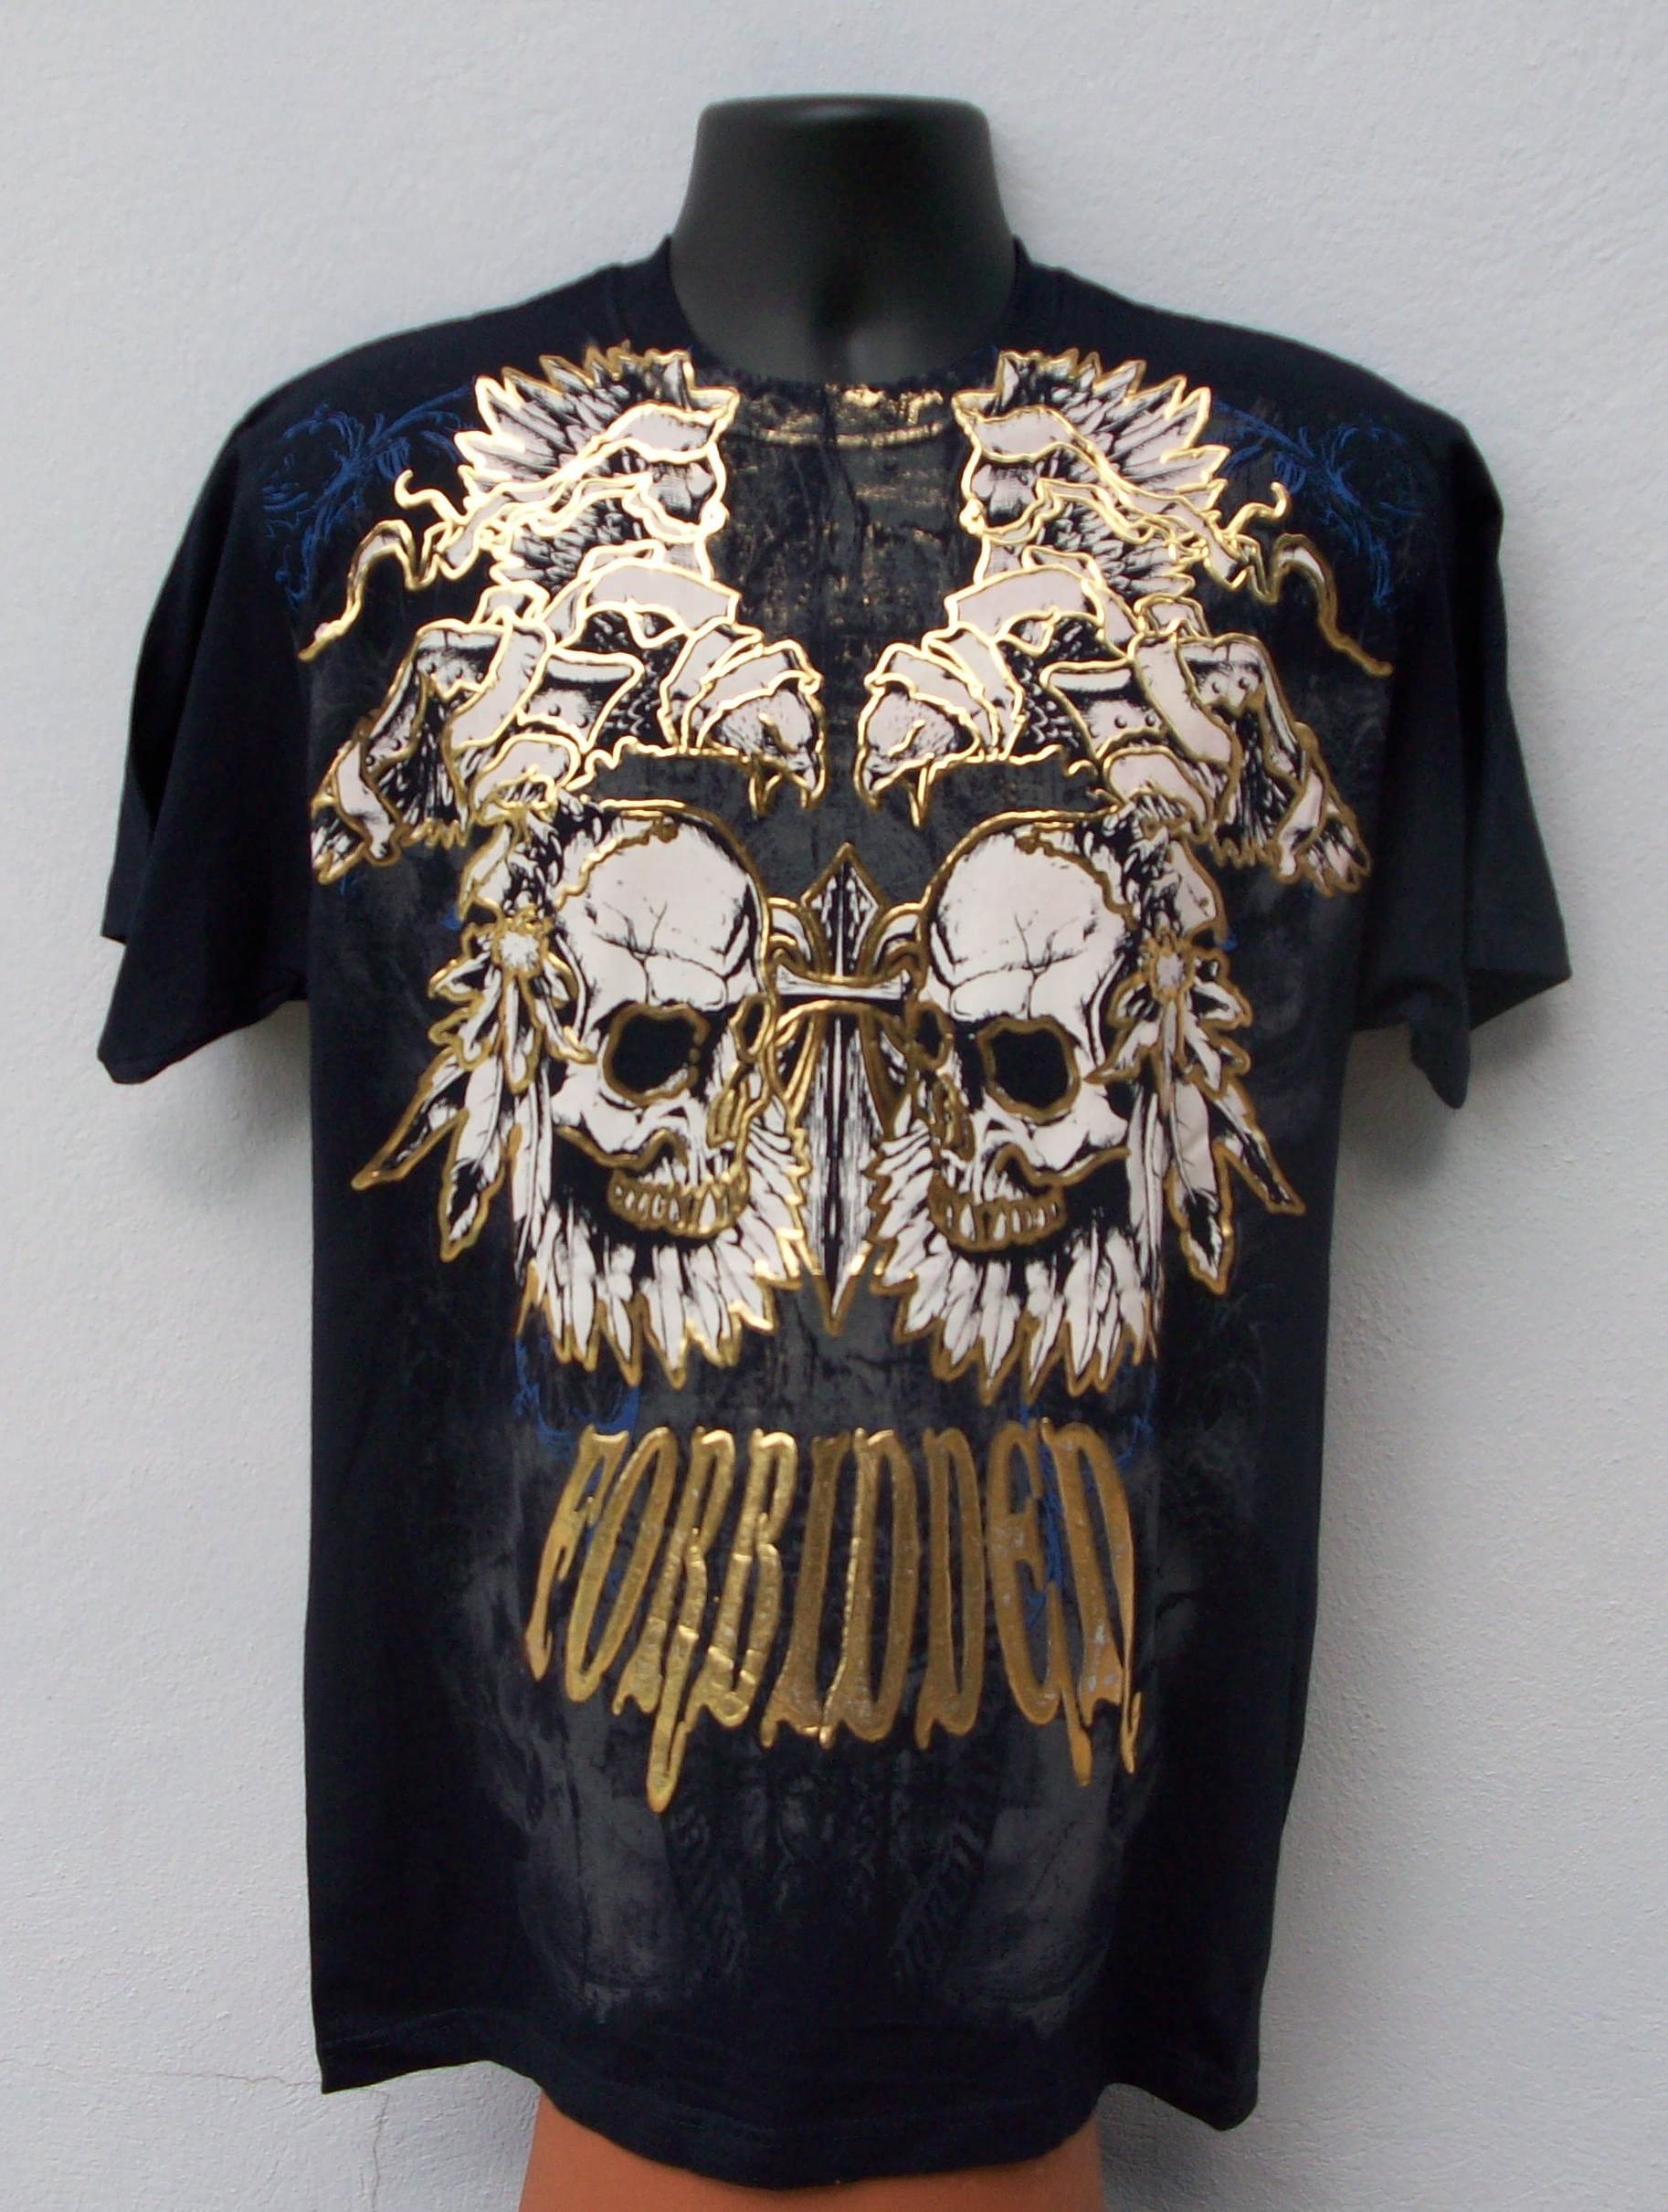 Forbidden Navy Gold Foil T Shirt From Visible Scars